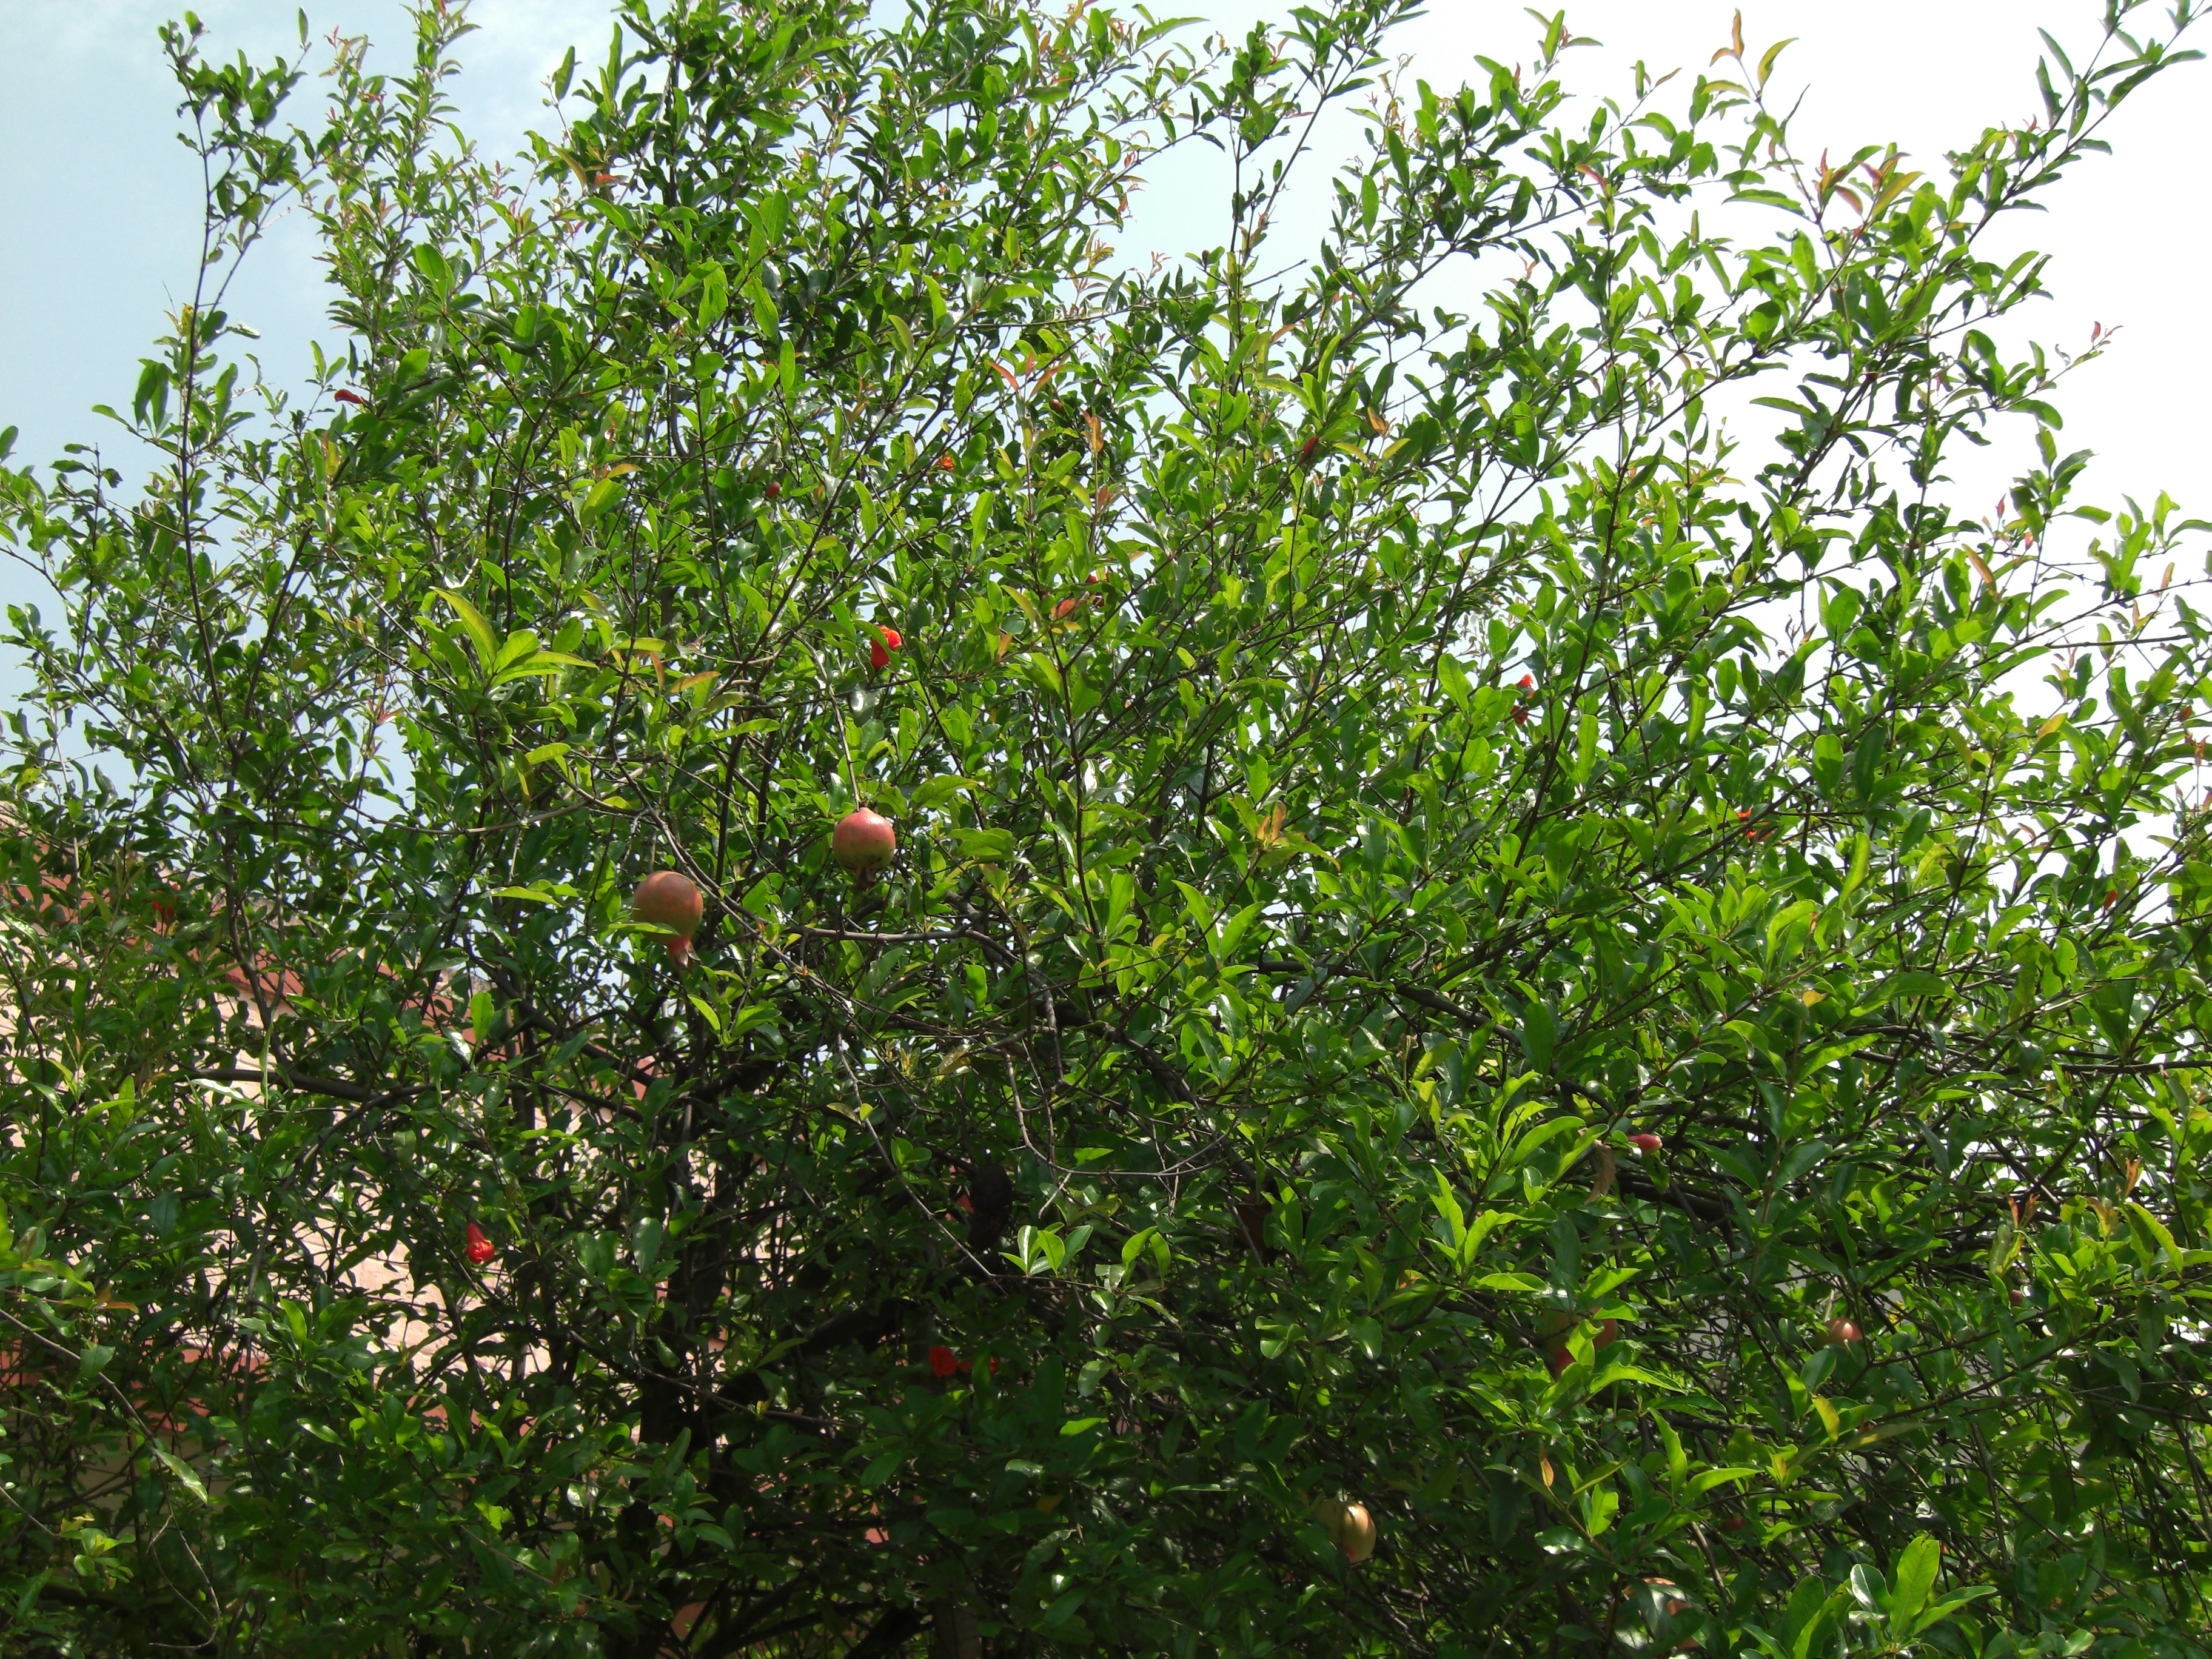 File:Pomegranate Tree.jpg - Wikimedia Commons